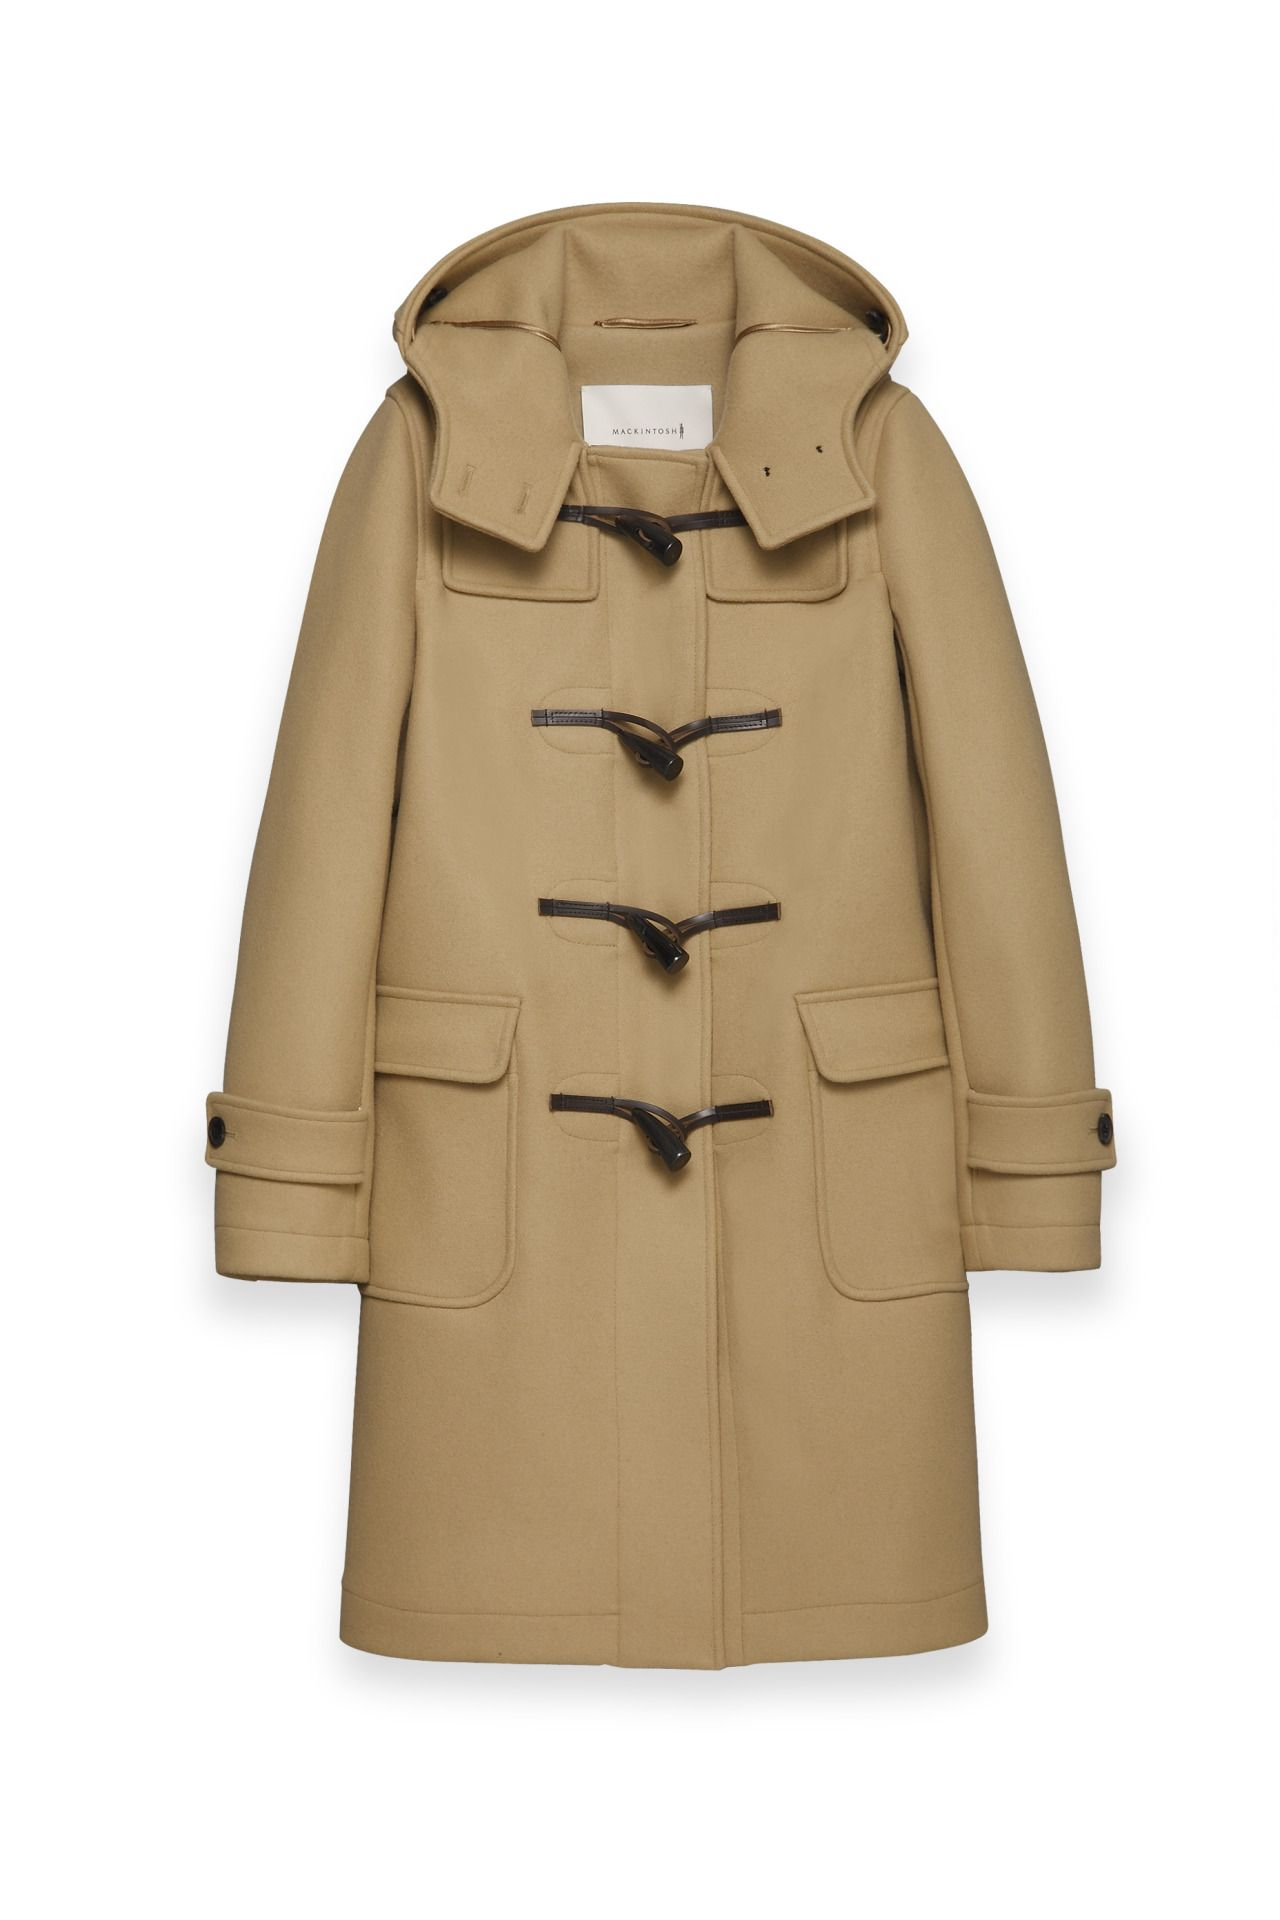 Mackintosh Wool Duffle Coat | Covetable Clothing | Pinterest ...